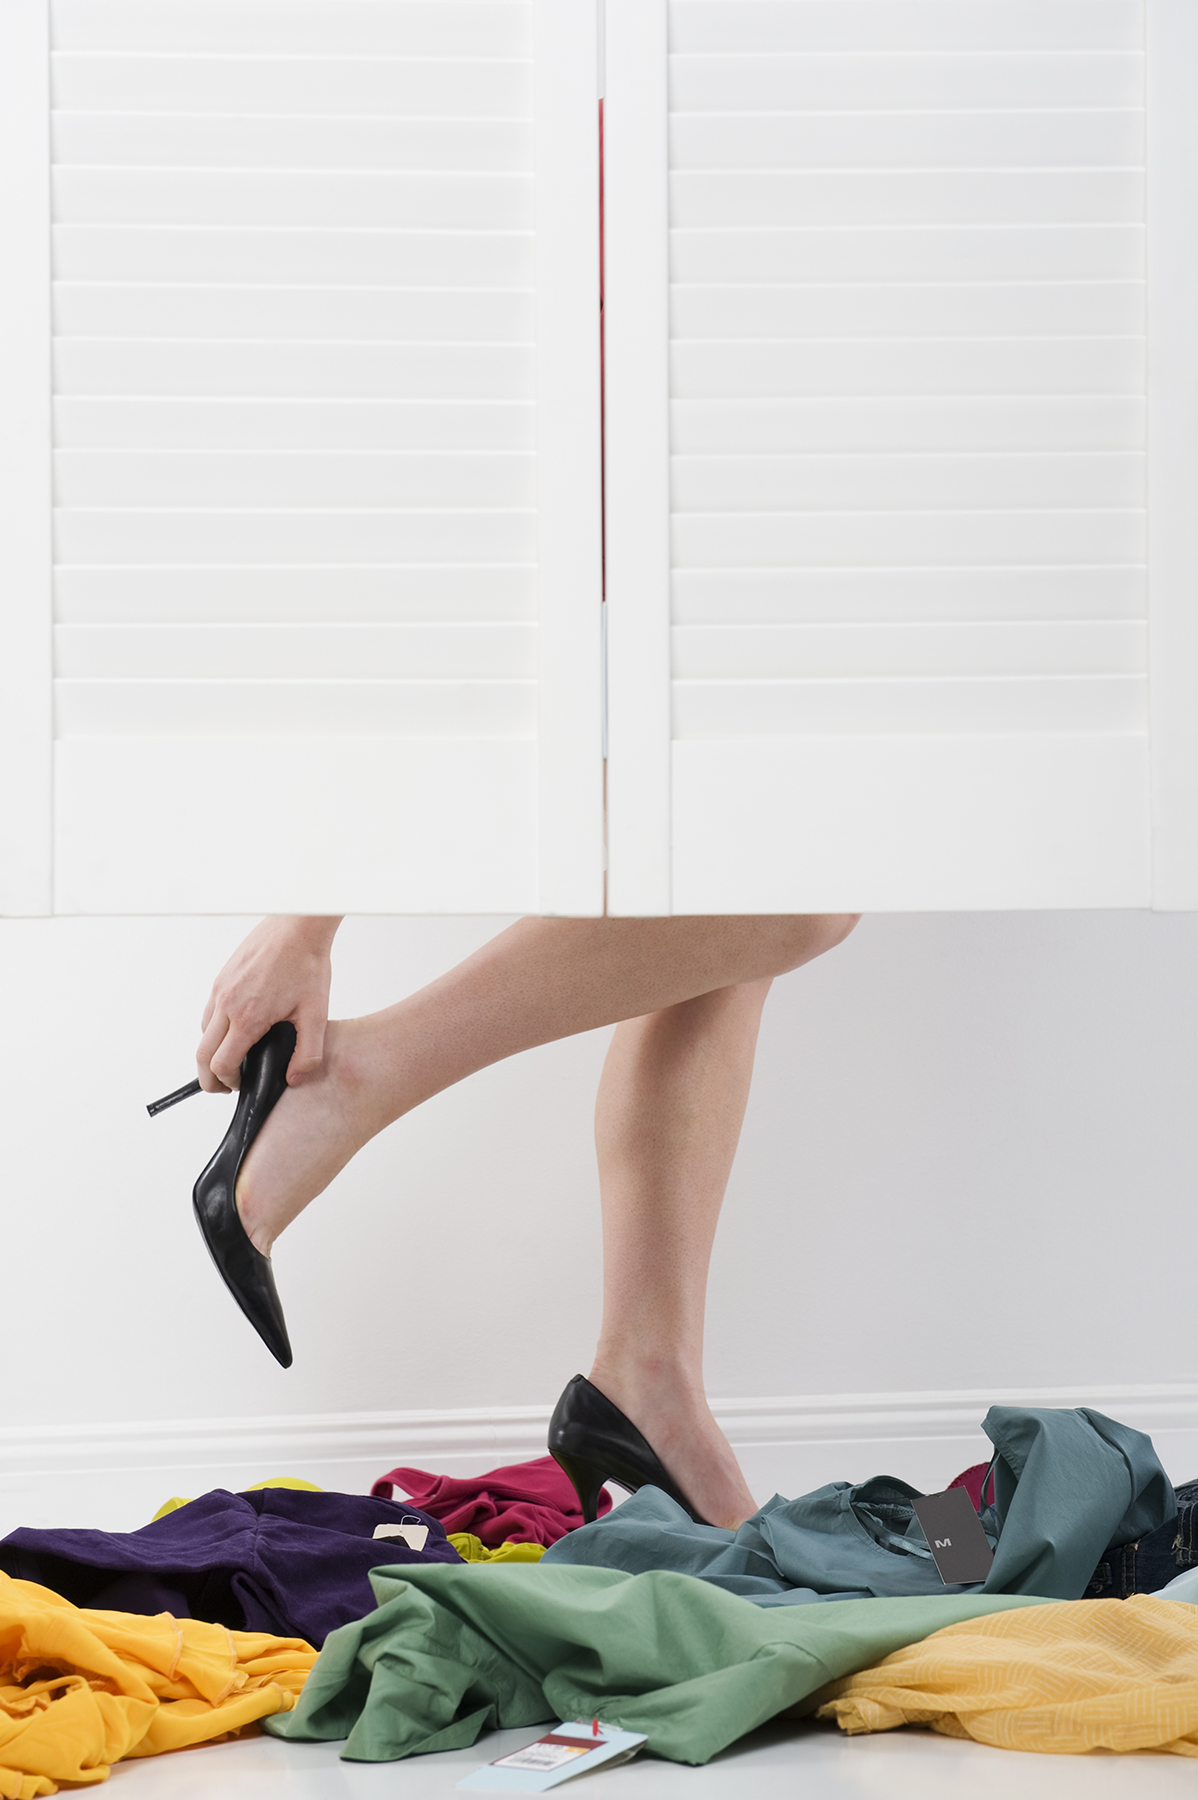 Woman in high heels in fitting room